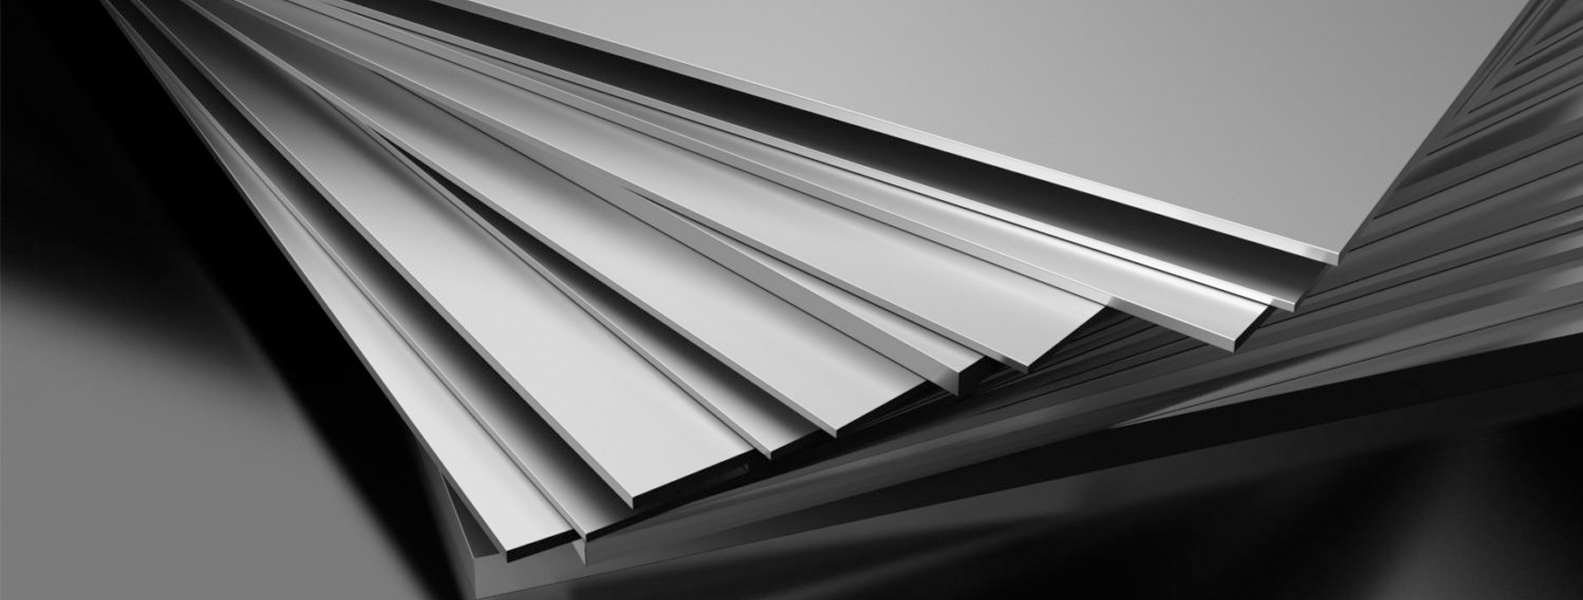 S S Sheet Dealer in Ahmedabad, S S Sheet Dealer in Gujarat, Aluminium Section in Ahmedabad, Aluminium Section in Gujarat